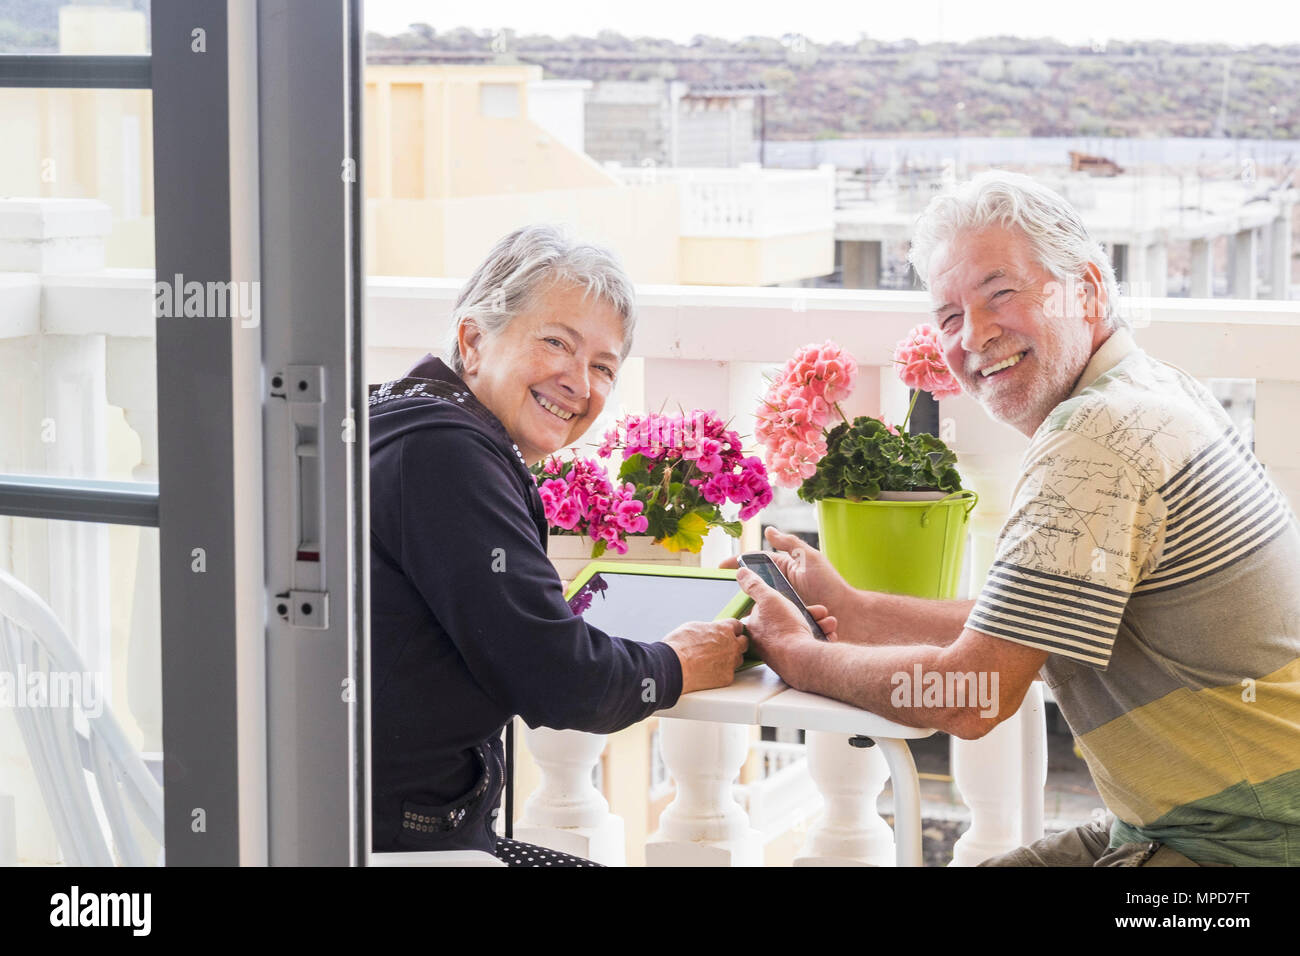 couple of happy seniors gentlemen use mobile technology tablet and phone outdoor in the terrace under a beautiful day sunlight. elderly retired daily  - Stock Image